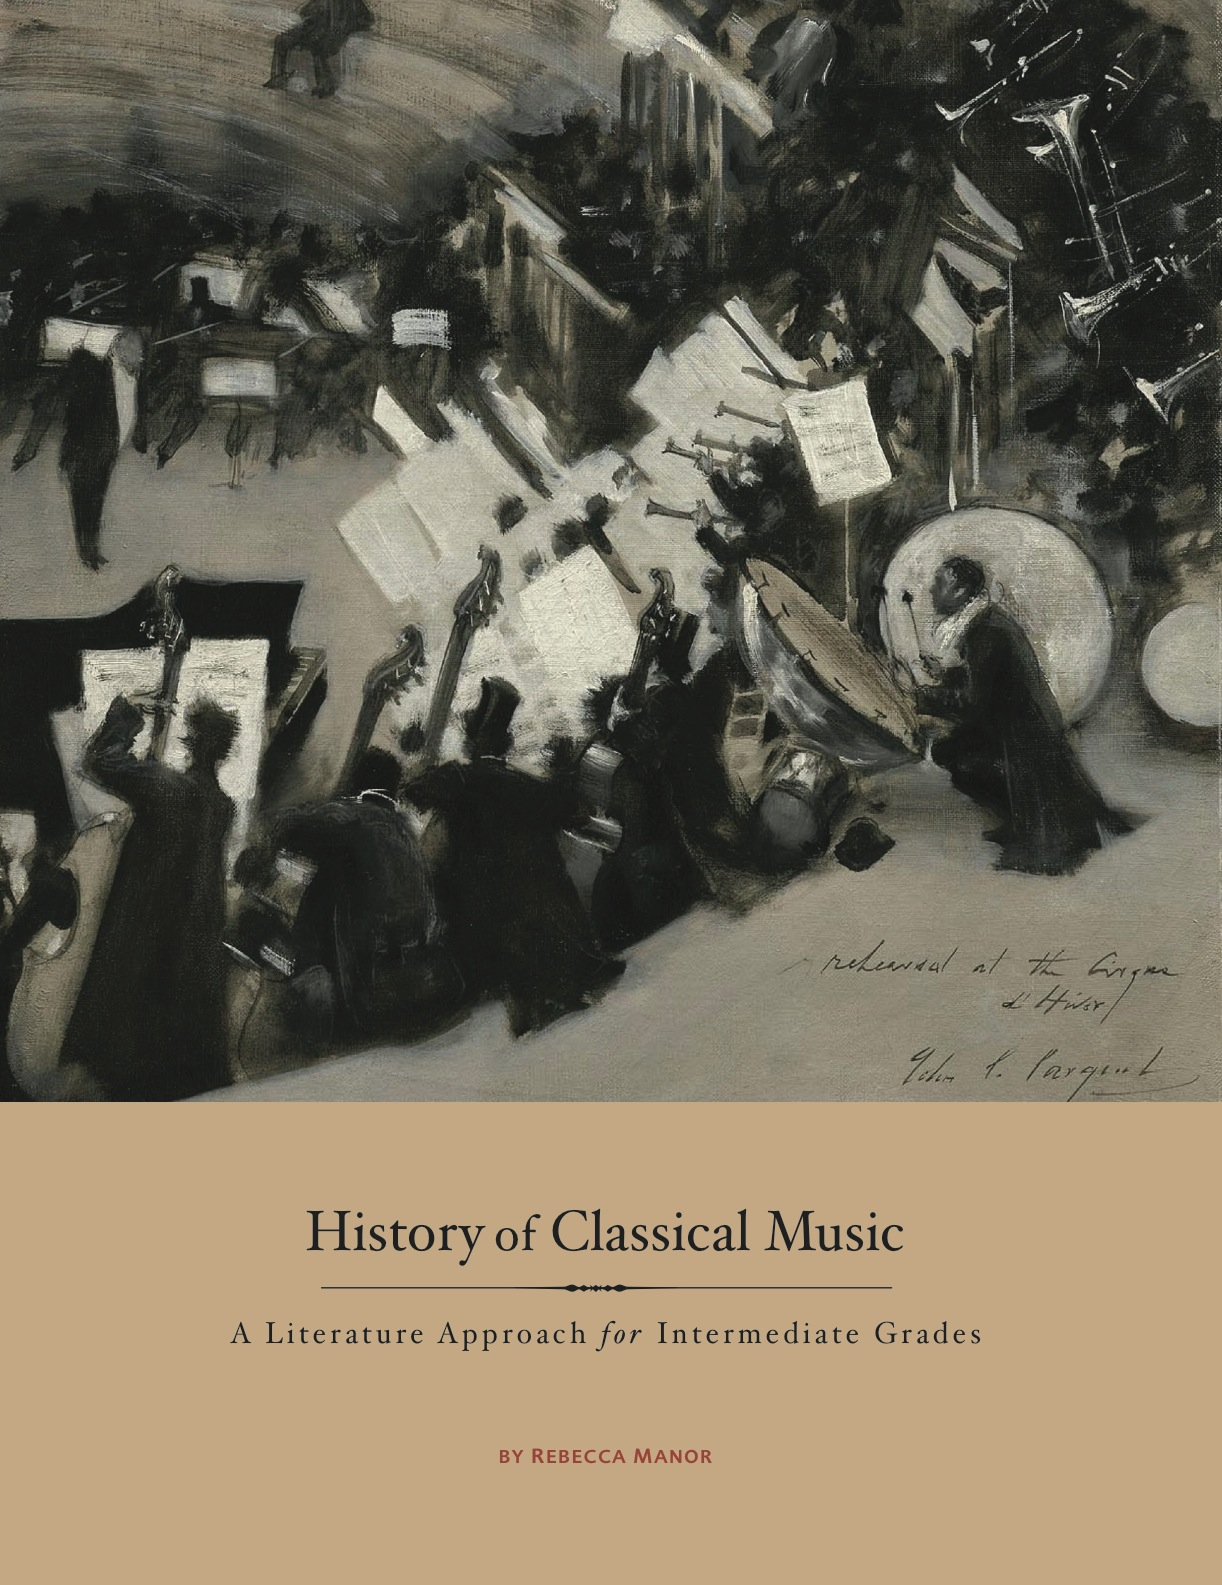 music history 2 study guide What was the composer that was known for his atonal music, invented the 12-tone method, was interested in the expressionist movement, wrote the music theory test harmonie lehre, and composed pierrot lunaire, op 21 no 8 nacht.